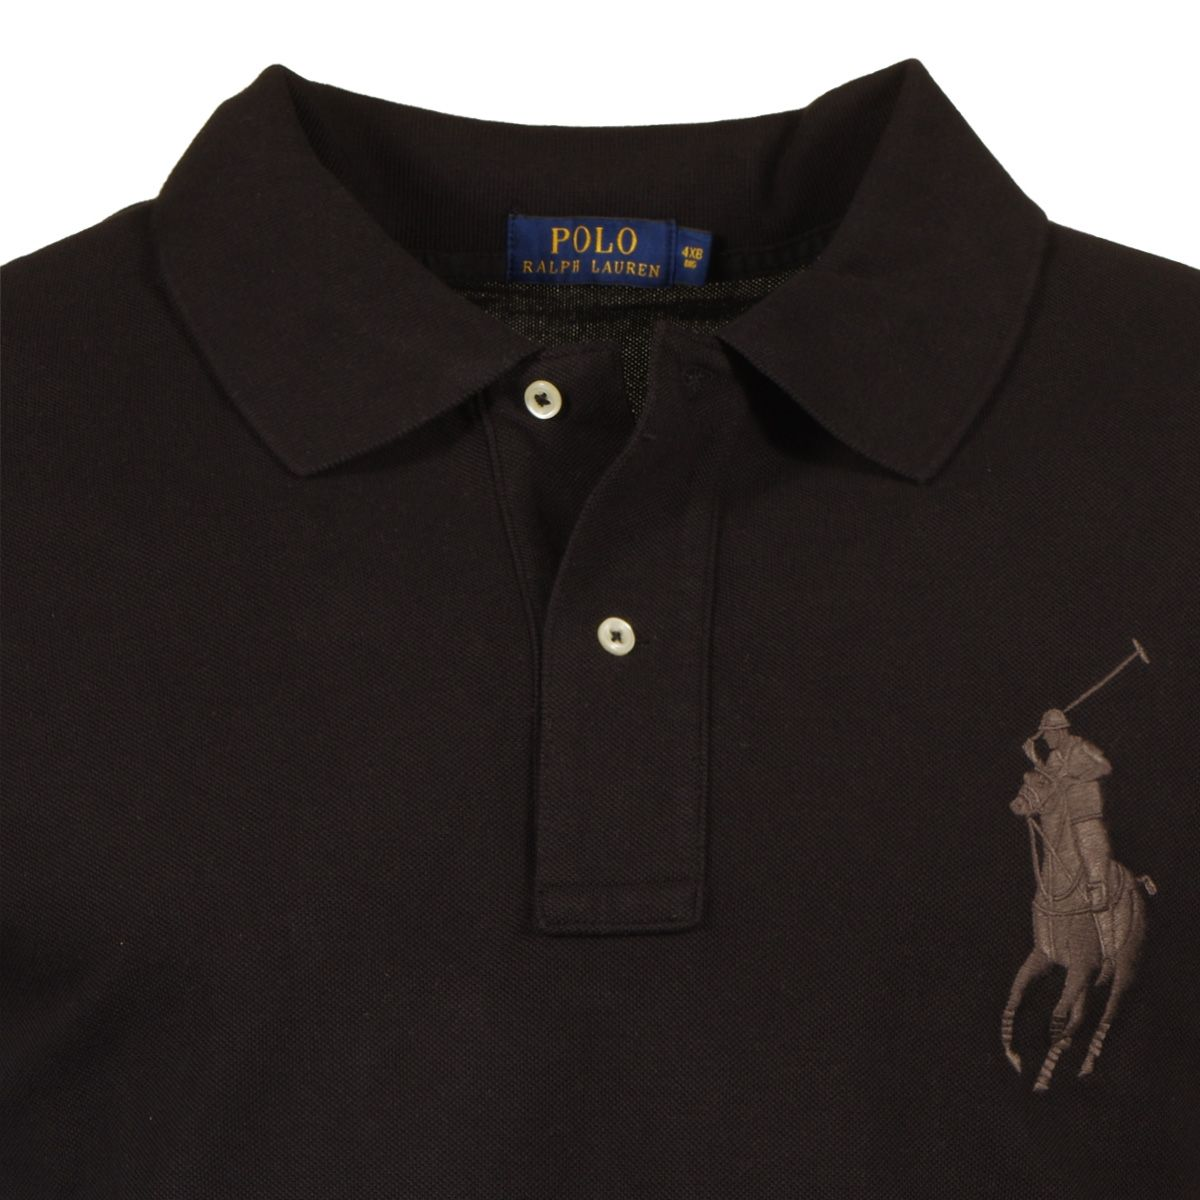 Polo noir grande taille du 2xl au 6xl for 6xl ralph lauren polo shirts